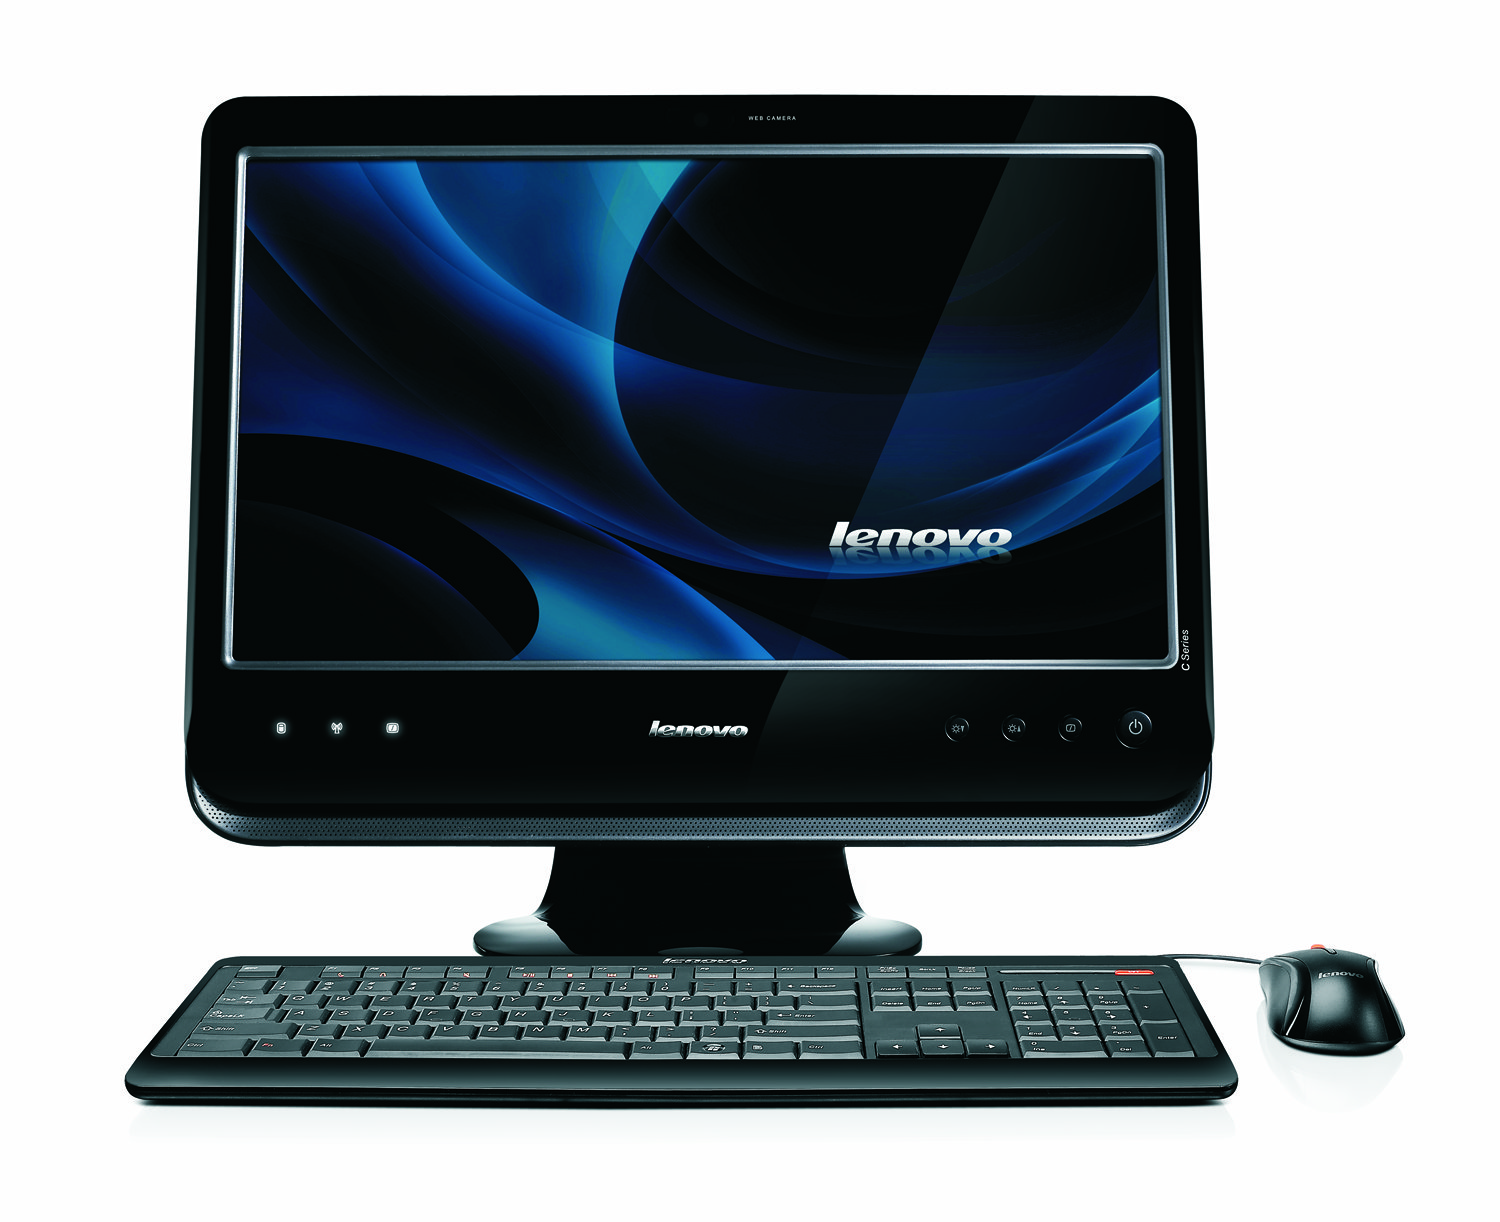 Lenovo IdeaCentre A320, B520, B320 & C205 all-in-ones hit CES 2011